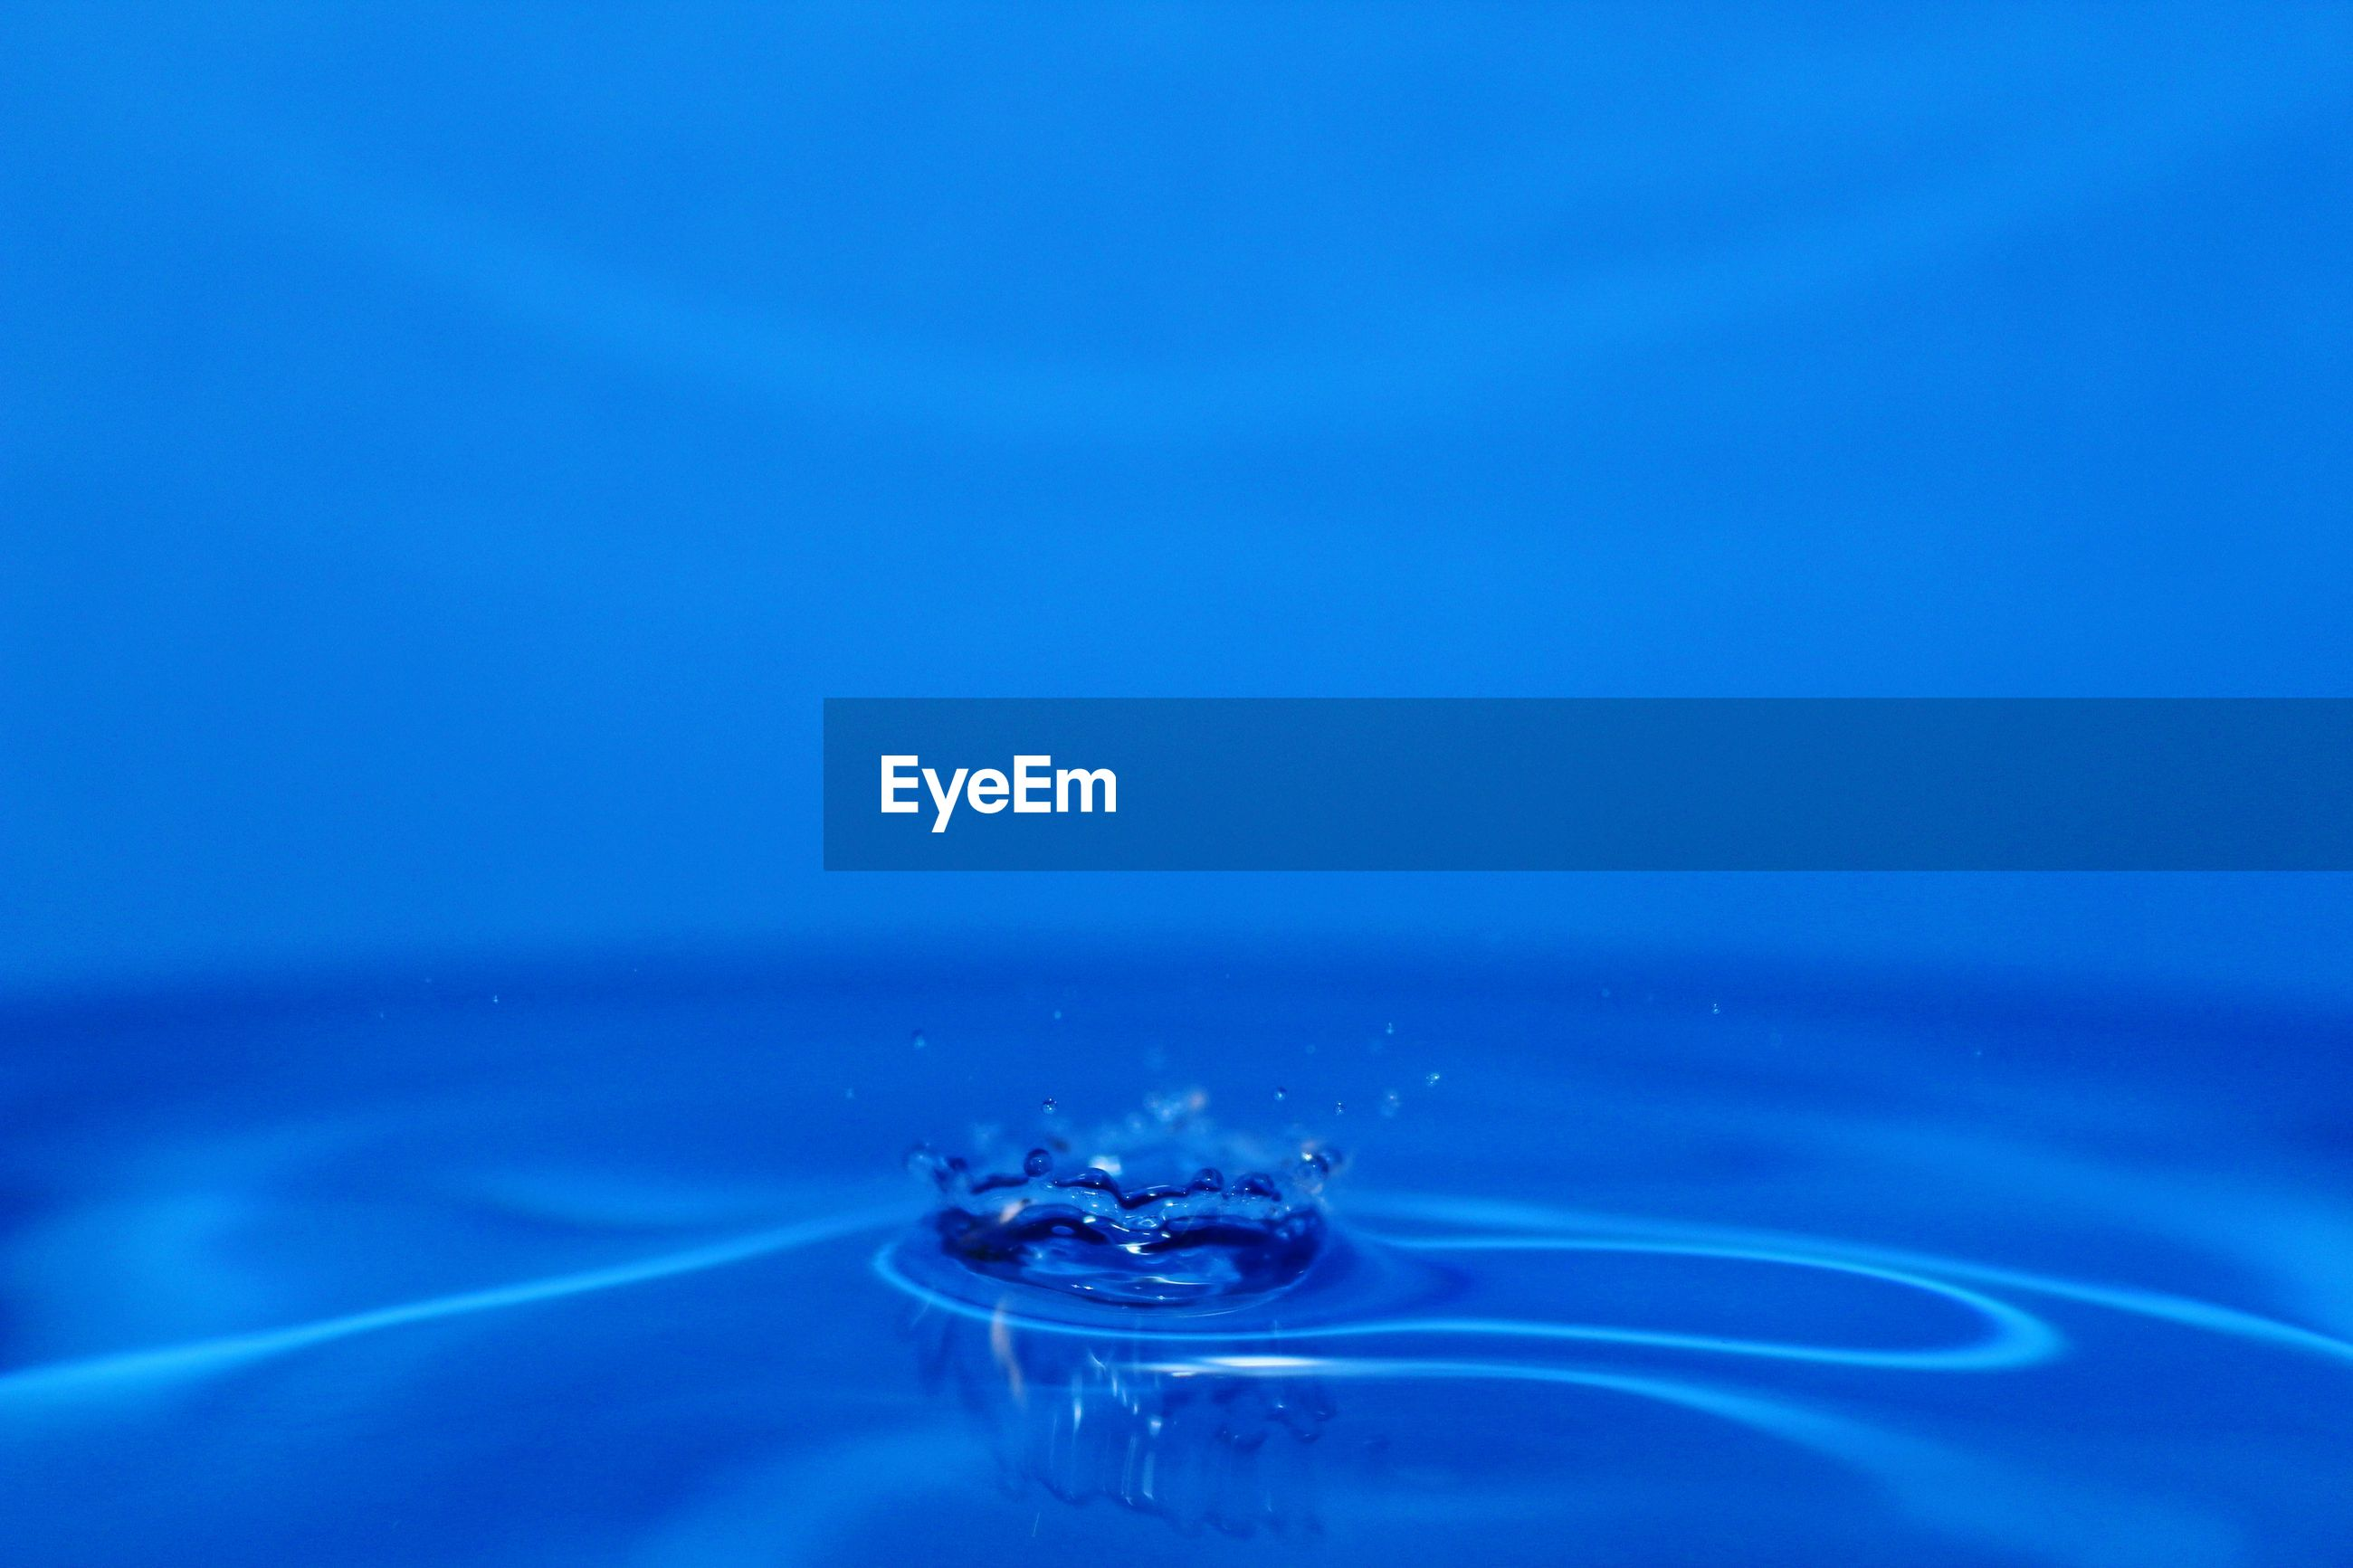 CLOSE-UP OF WATER SPLASHING ON BLUE SURFACE